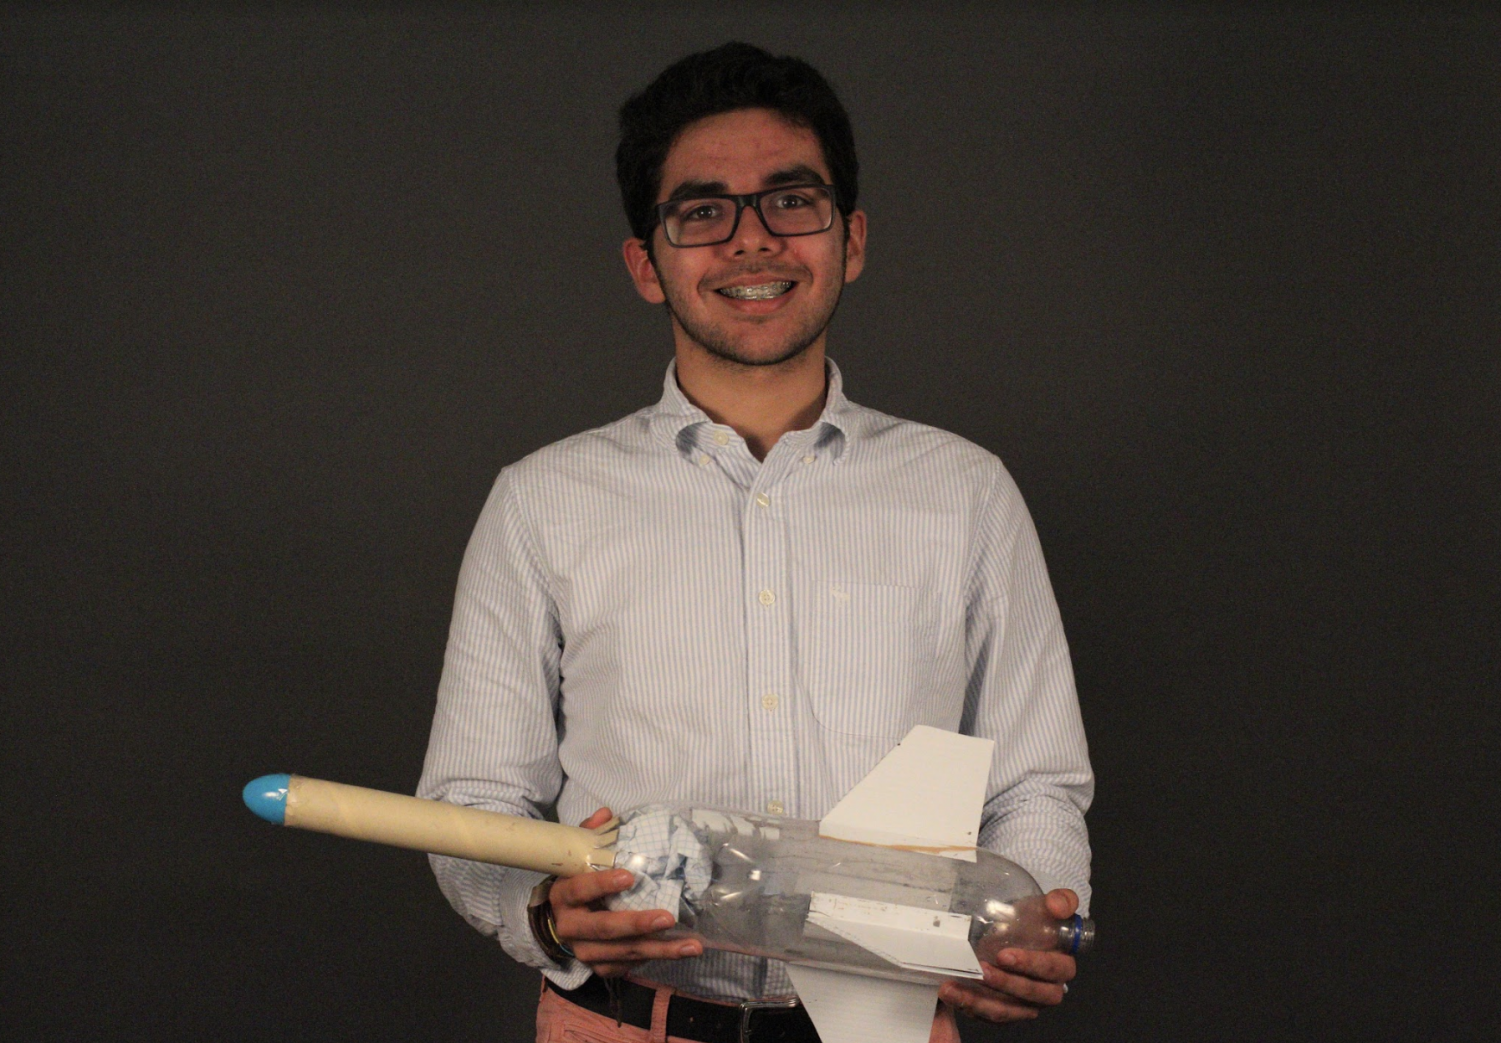 IT IS ROCKET SCIENCE: DEVON DELGADO AND SECME OLYMPIAD